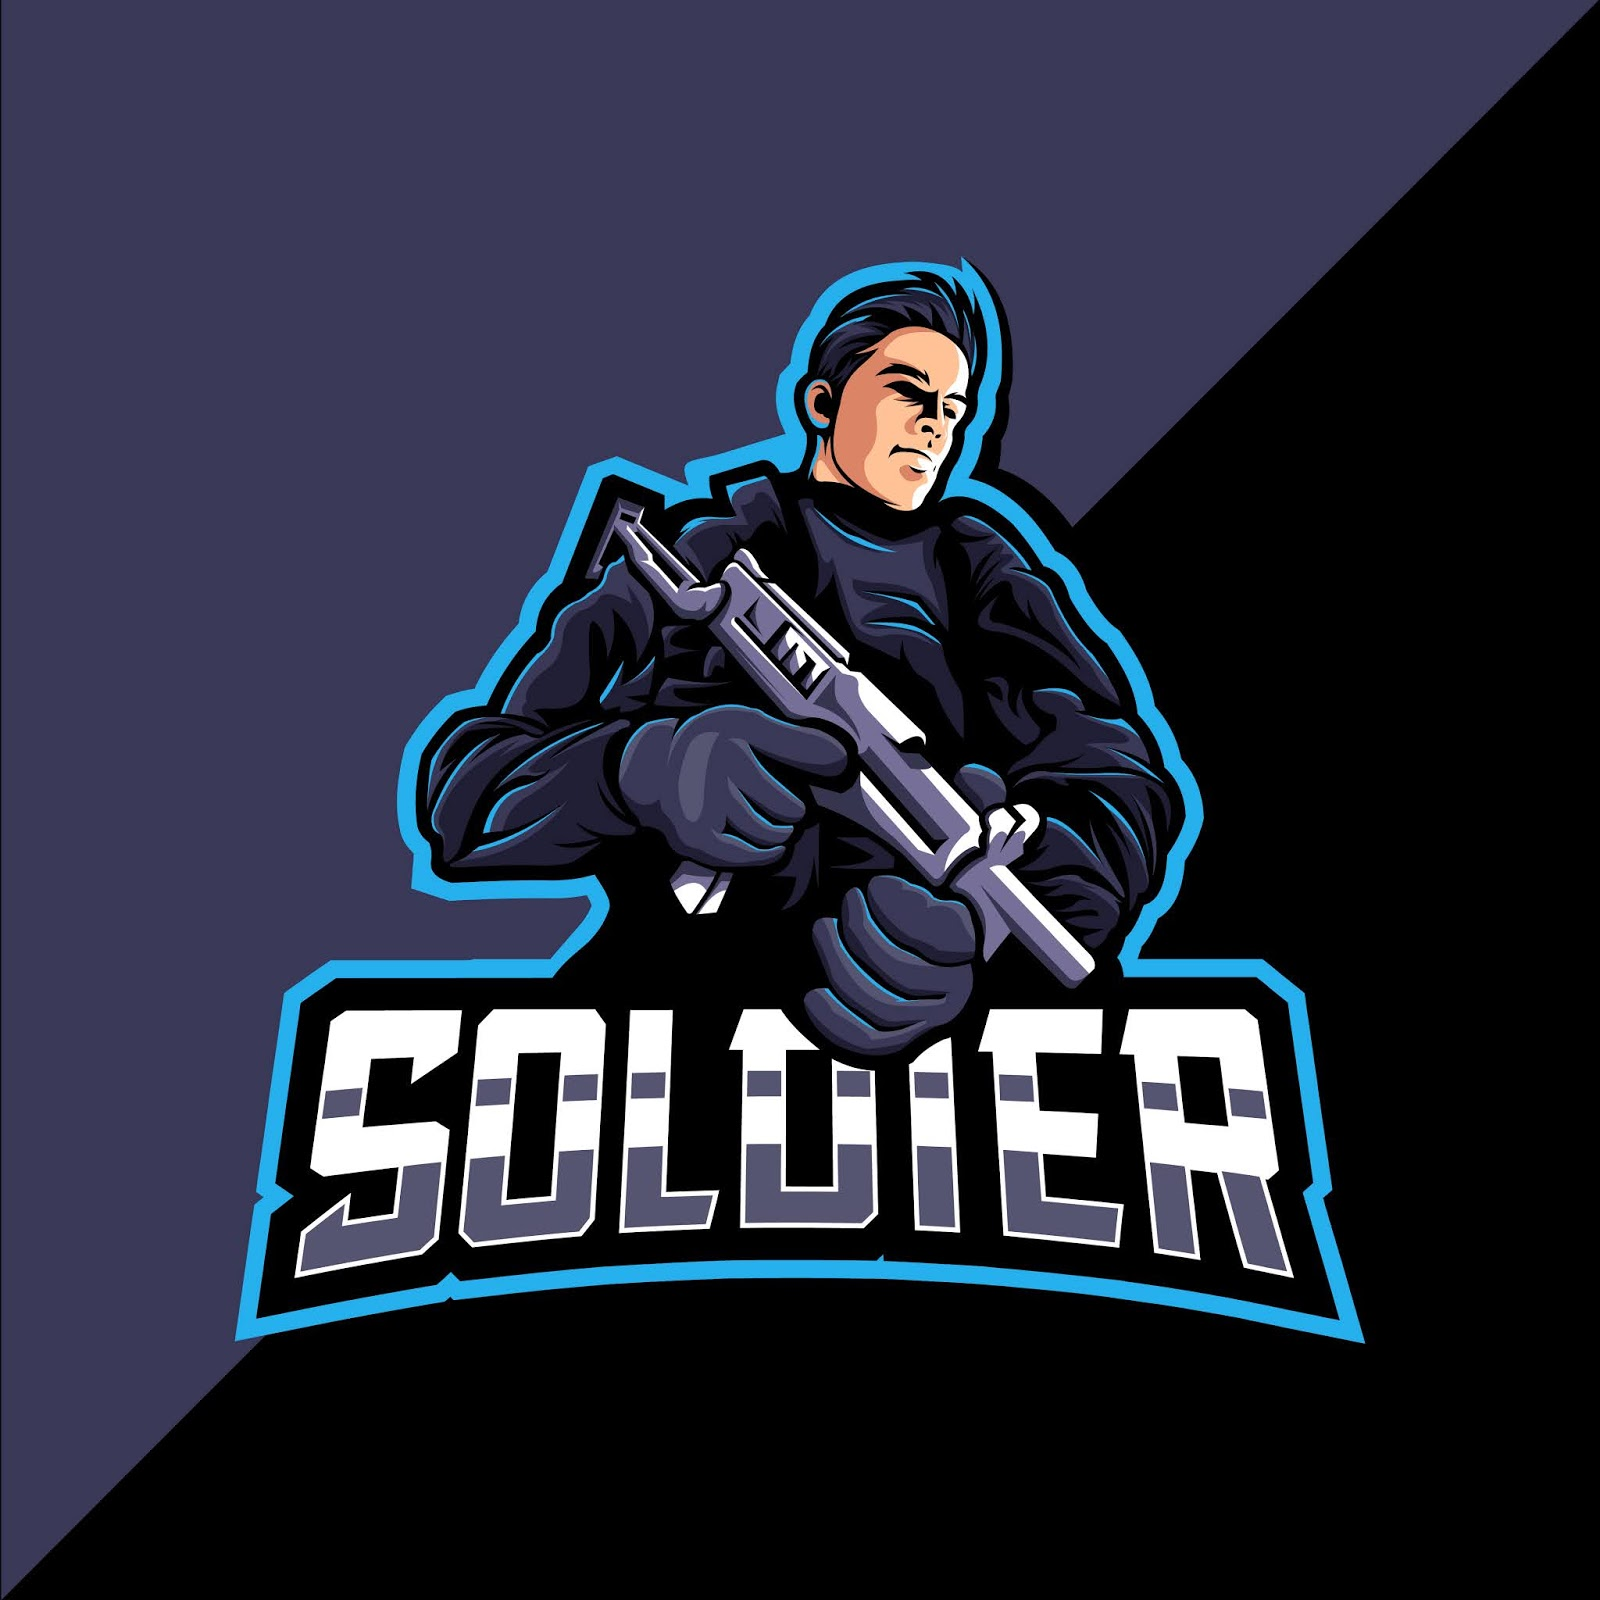 Soldier Mascot Esports Logo Gaming Free Download Vector CDR, AI, EPS and PNG Formats